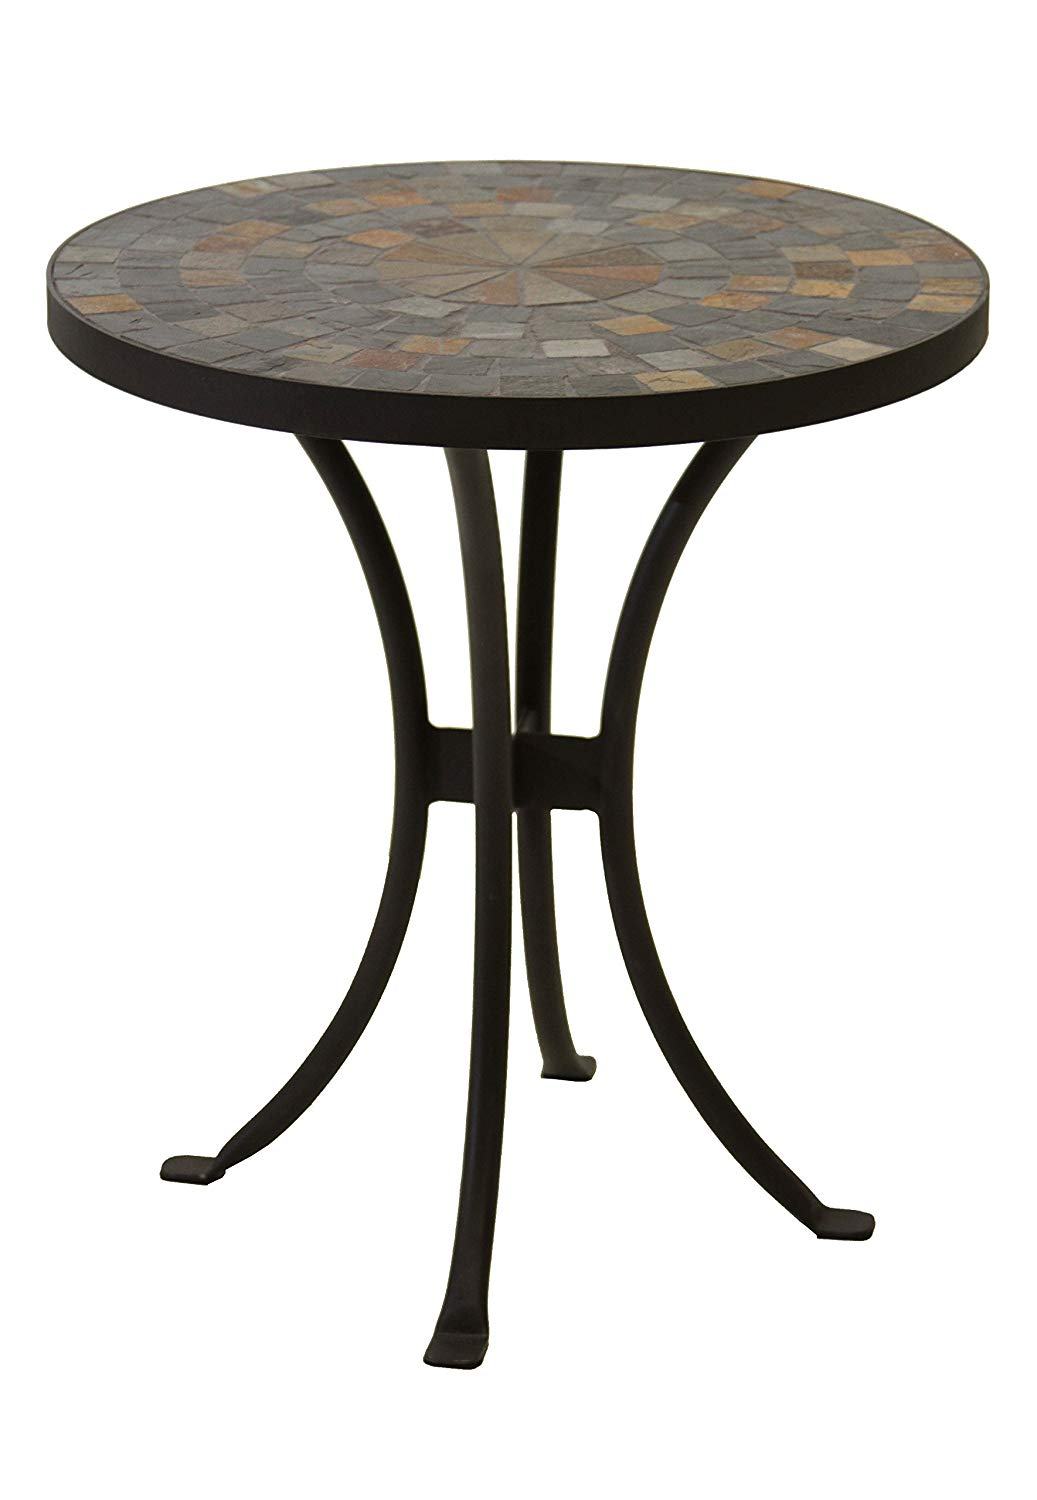 outdoor interiors llc mosaic side table inch stone accent patio tables garden gray metal coffee chestnut sofa with chairs clear acrylic end contemporary hallway furniture screw